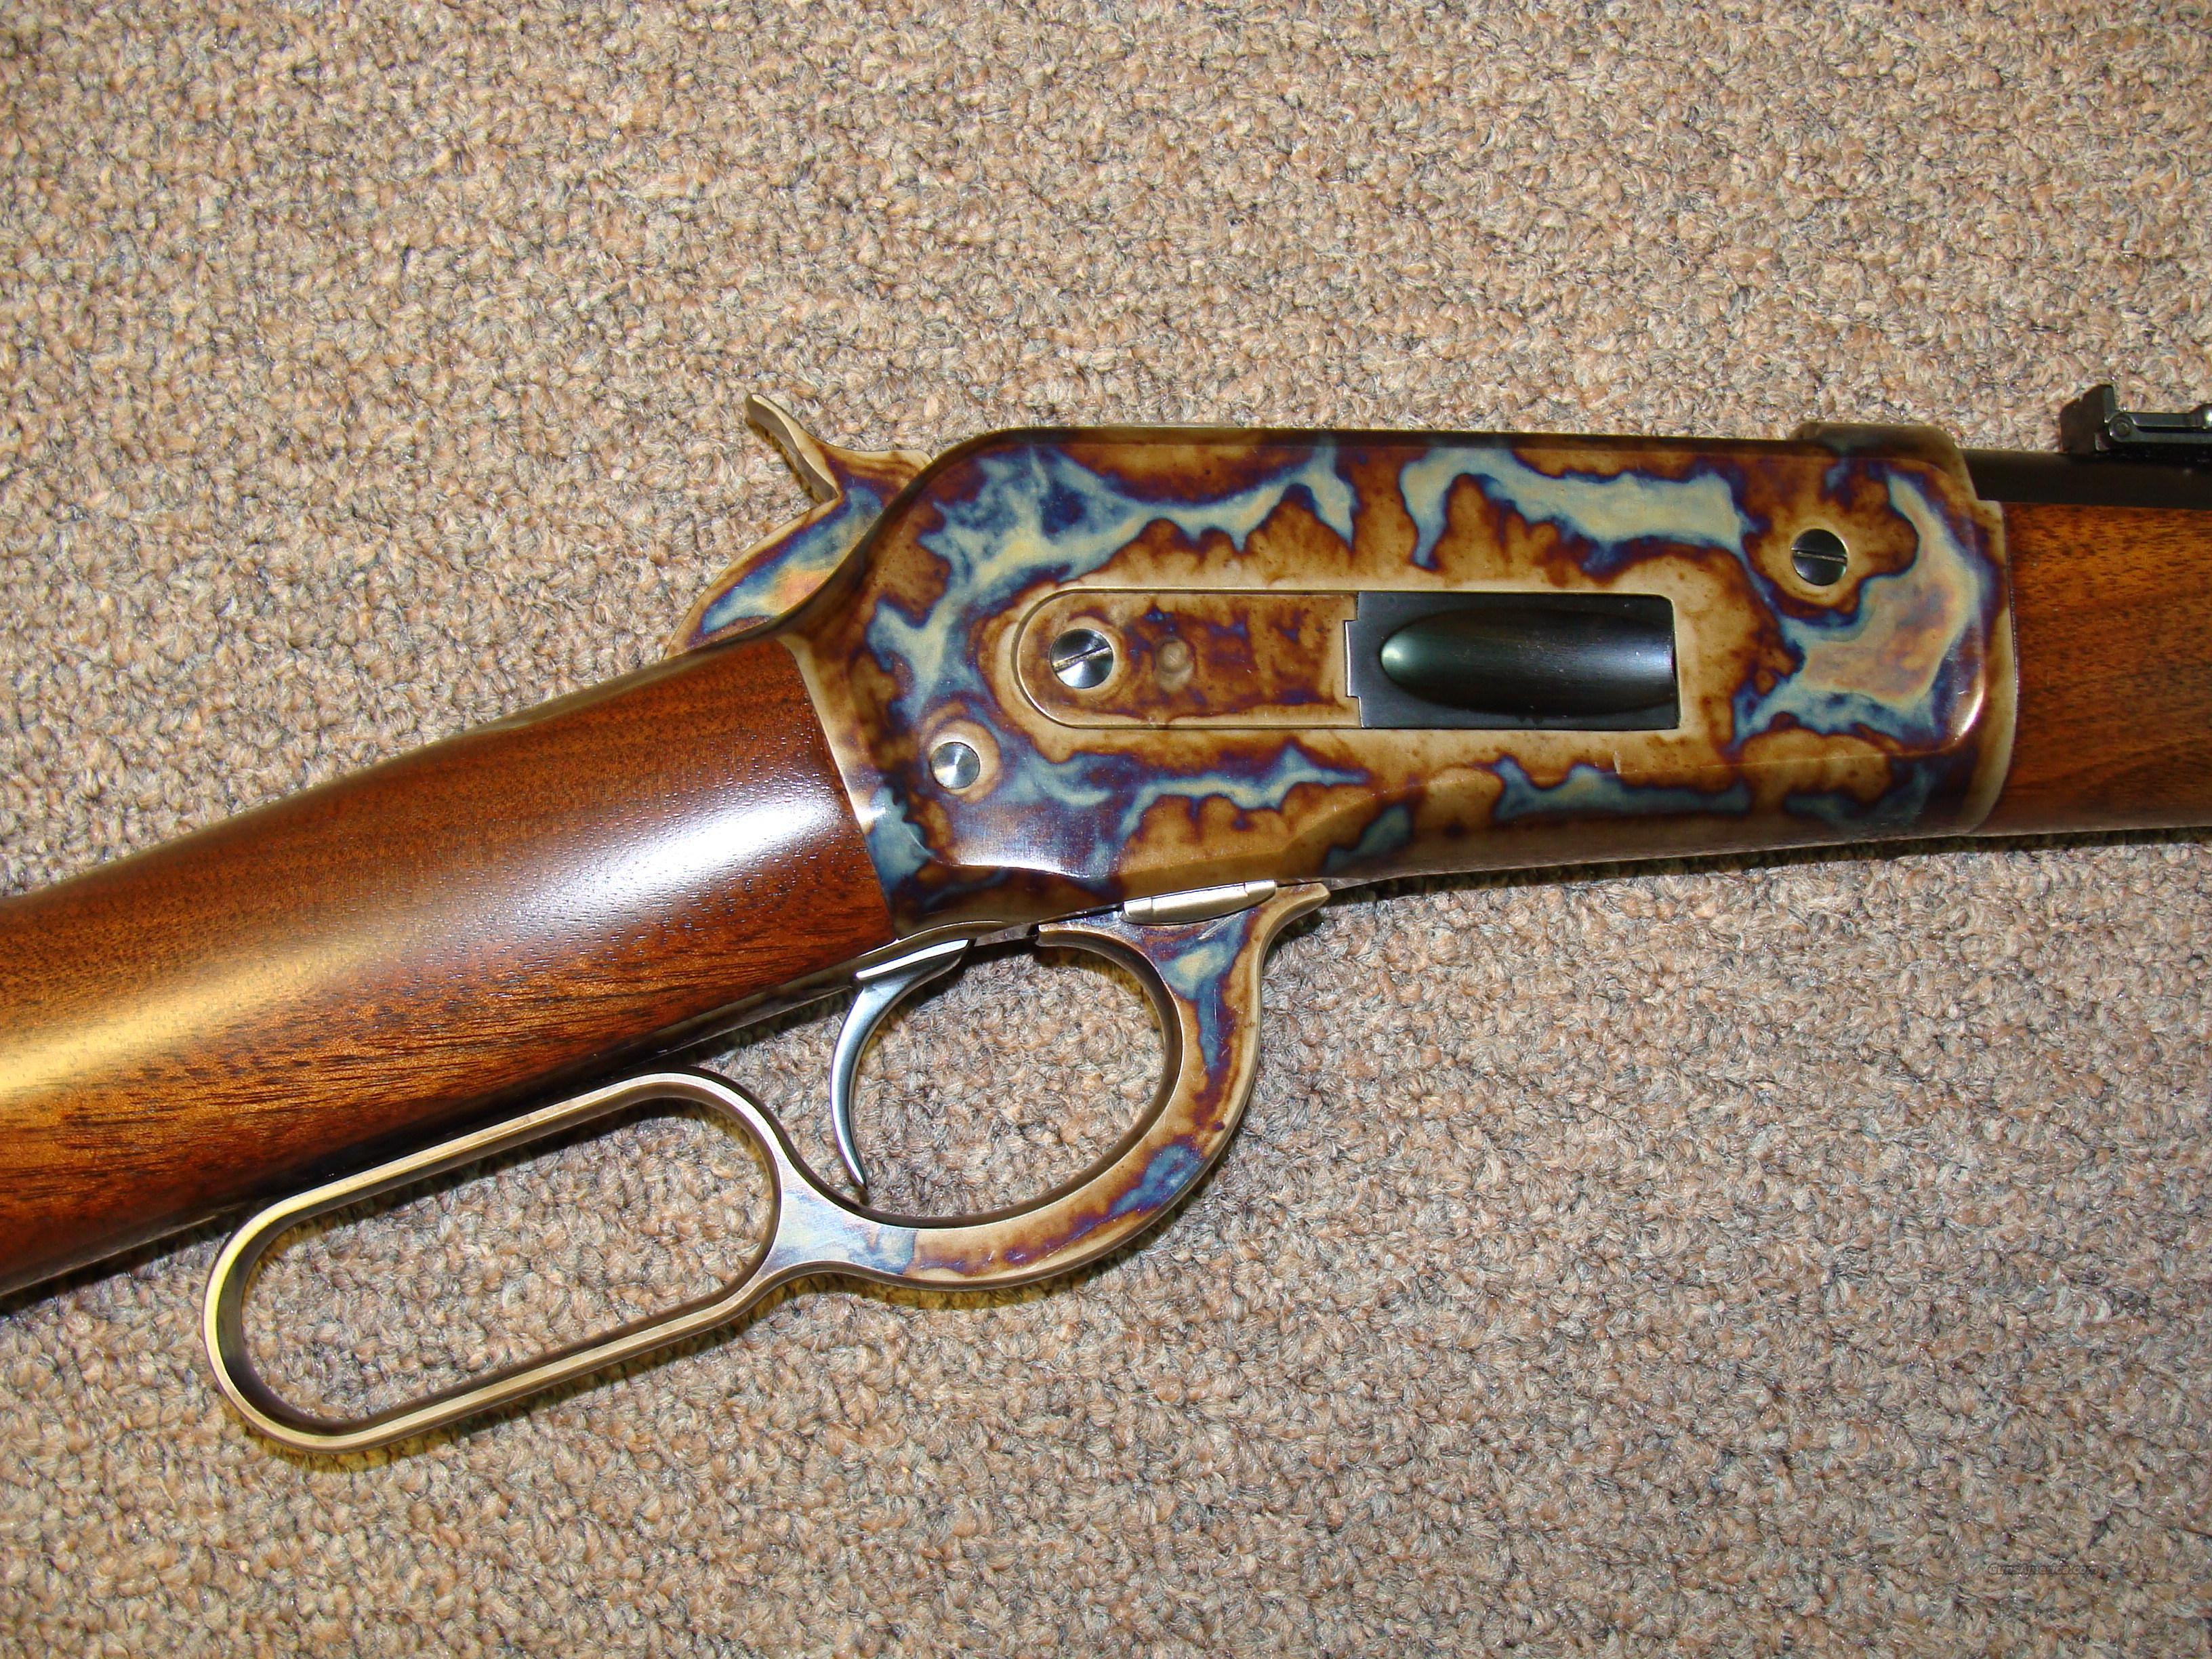 1886 SADDLE RING CARBINE BROWNING CUSTOM  Guns > Rifles > Browning Rifles > Lever Action